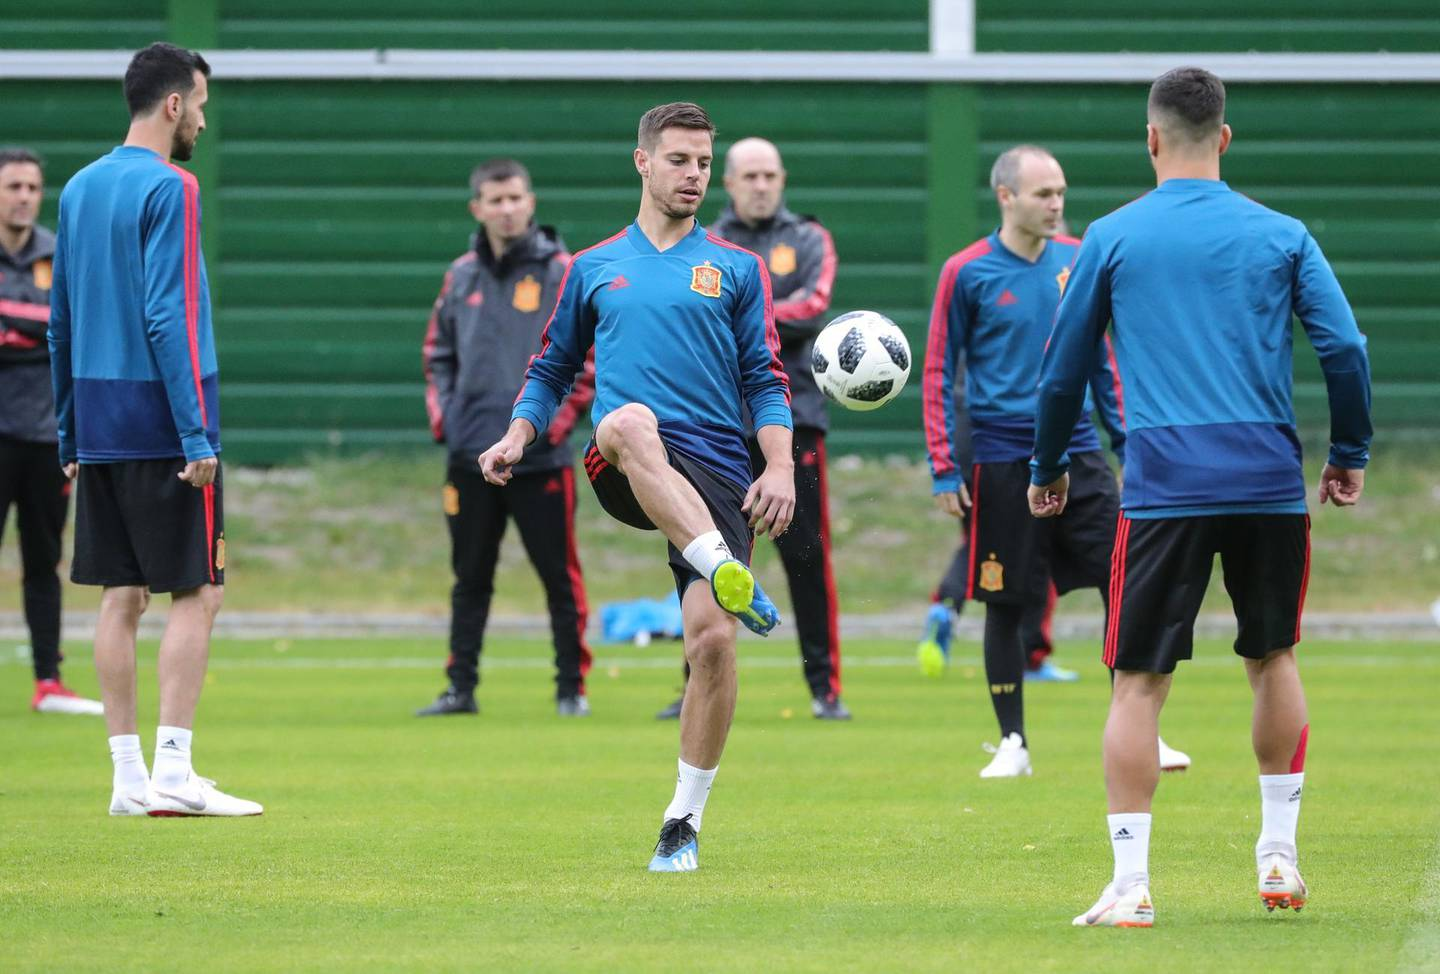 epa06837359 Spain's player Cesar Azpilicueta (C) attends a training session in Kaliningrad, Russia, 24 June 2018. Spain will face Morocco in the FIFA World Cup 2018 Group B preliminary round soccer match on 25 June 2018.  EPA/ARMANDO BABANI